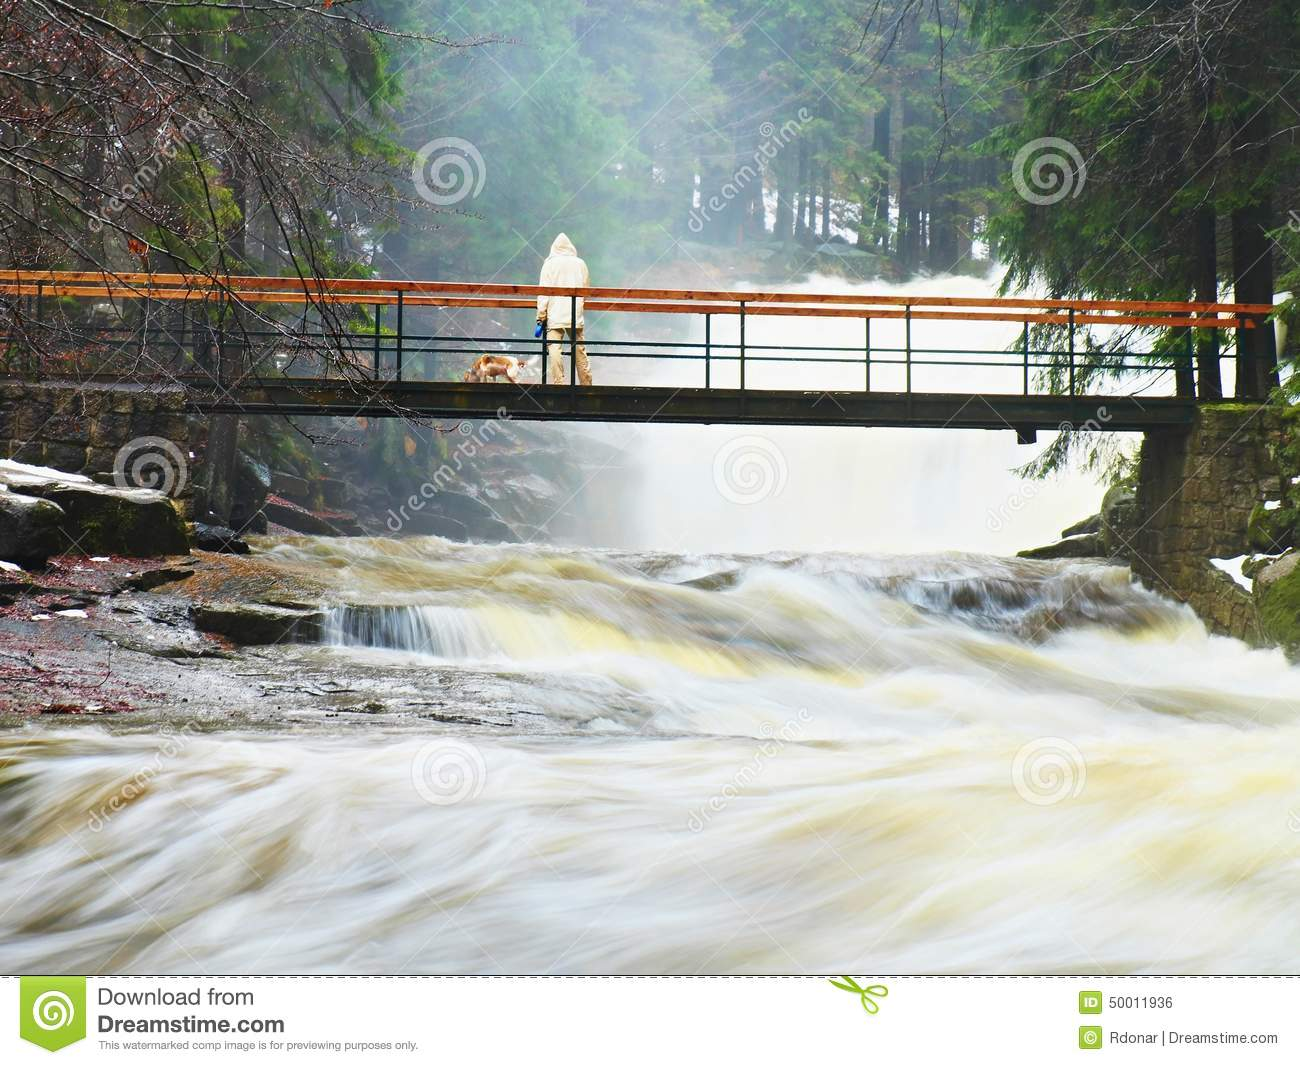 Bridge Over Troubled Water Stock Photos, Images, & Pictures.